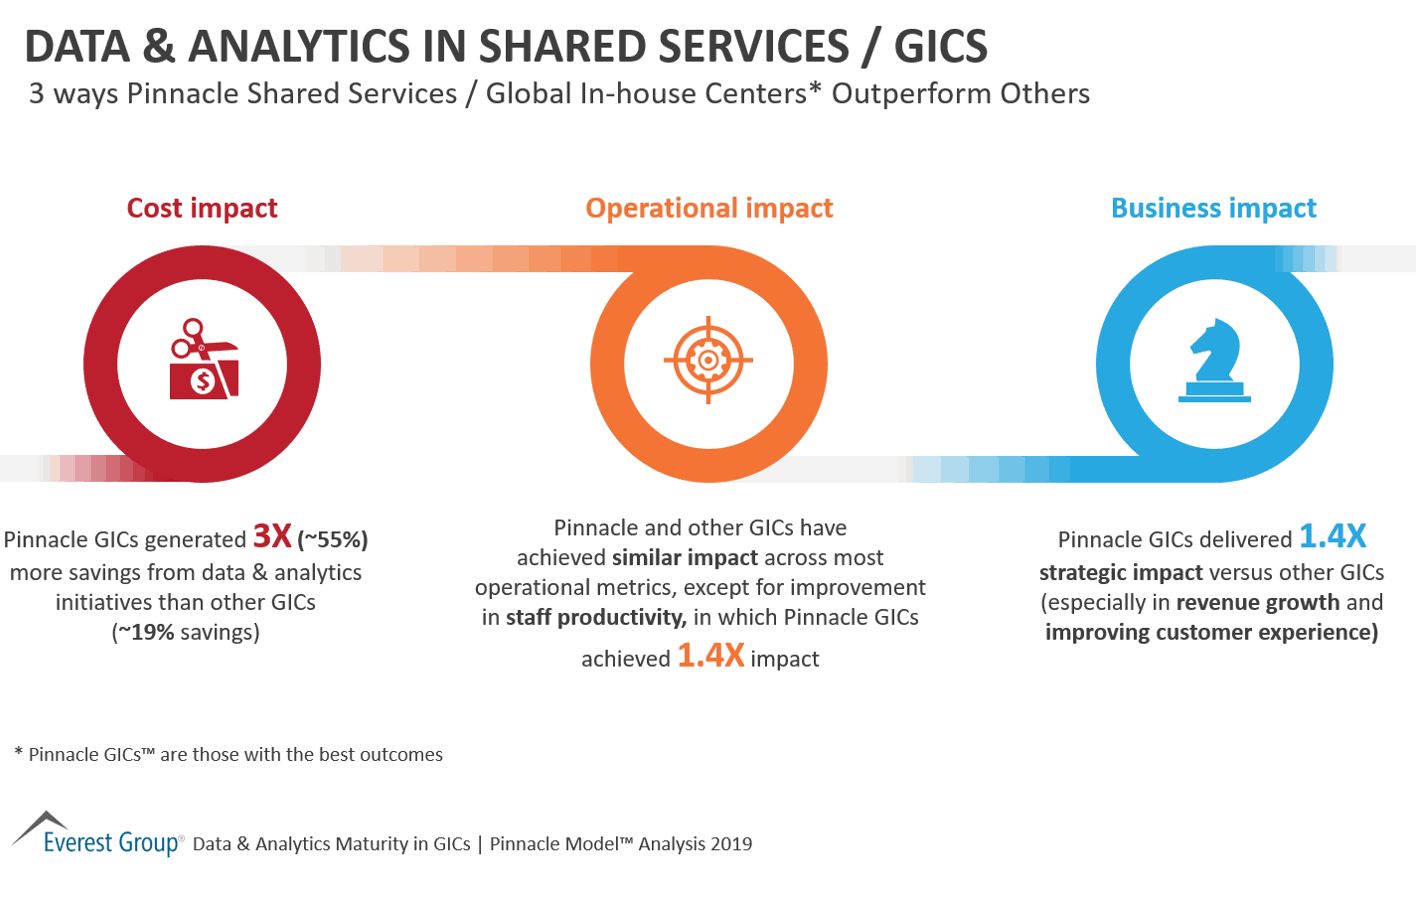 3 ways Pinnacle Shared Services Outperform Others